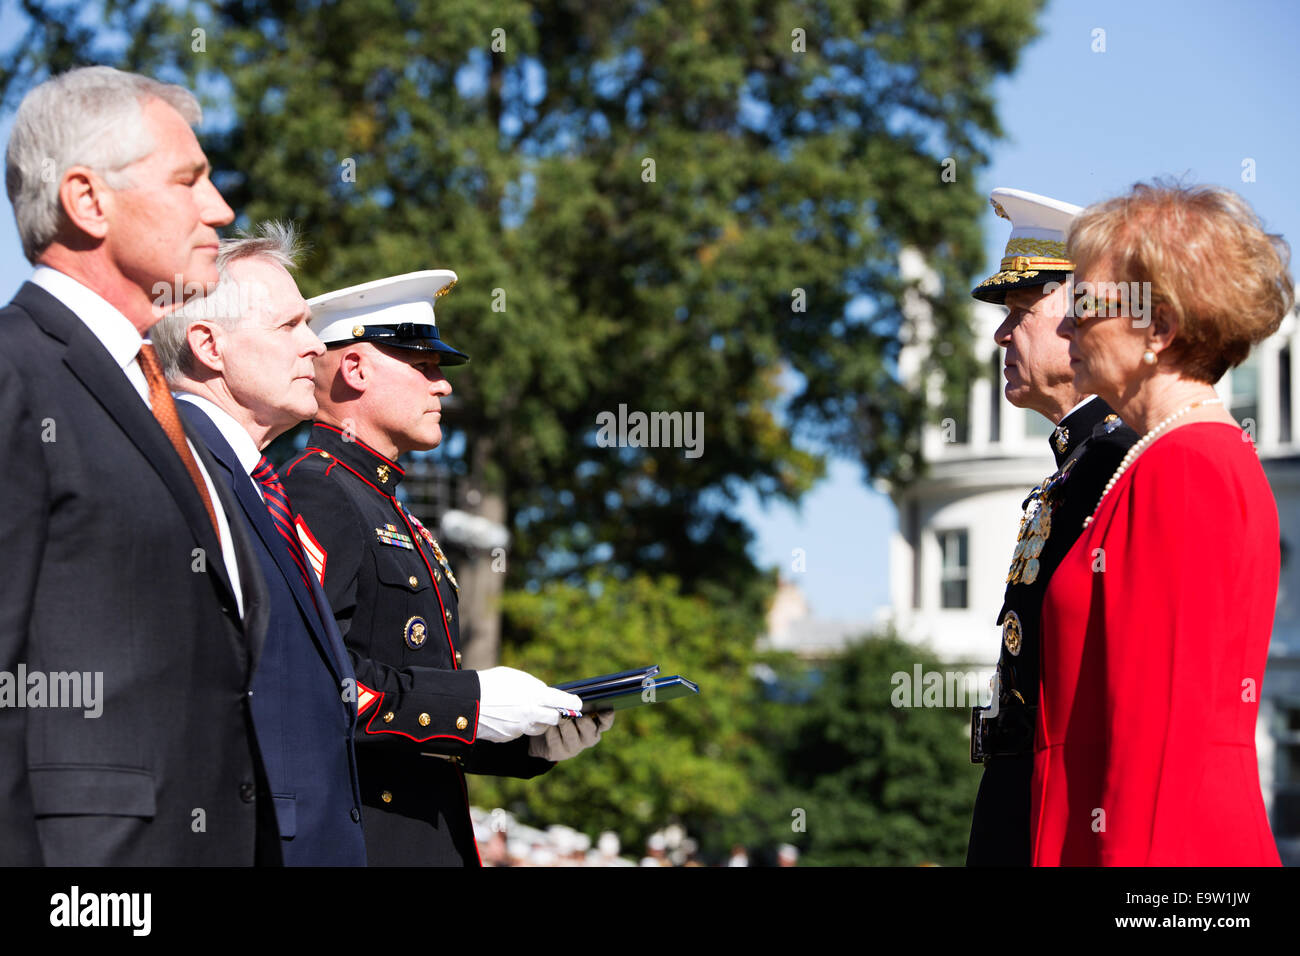 Secretary of Defense Chuck Hagel, left foreground, stands with Commandant of the Marine Corps Gen. James F. Amos, - Stock Image